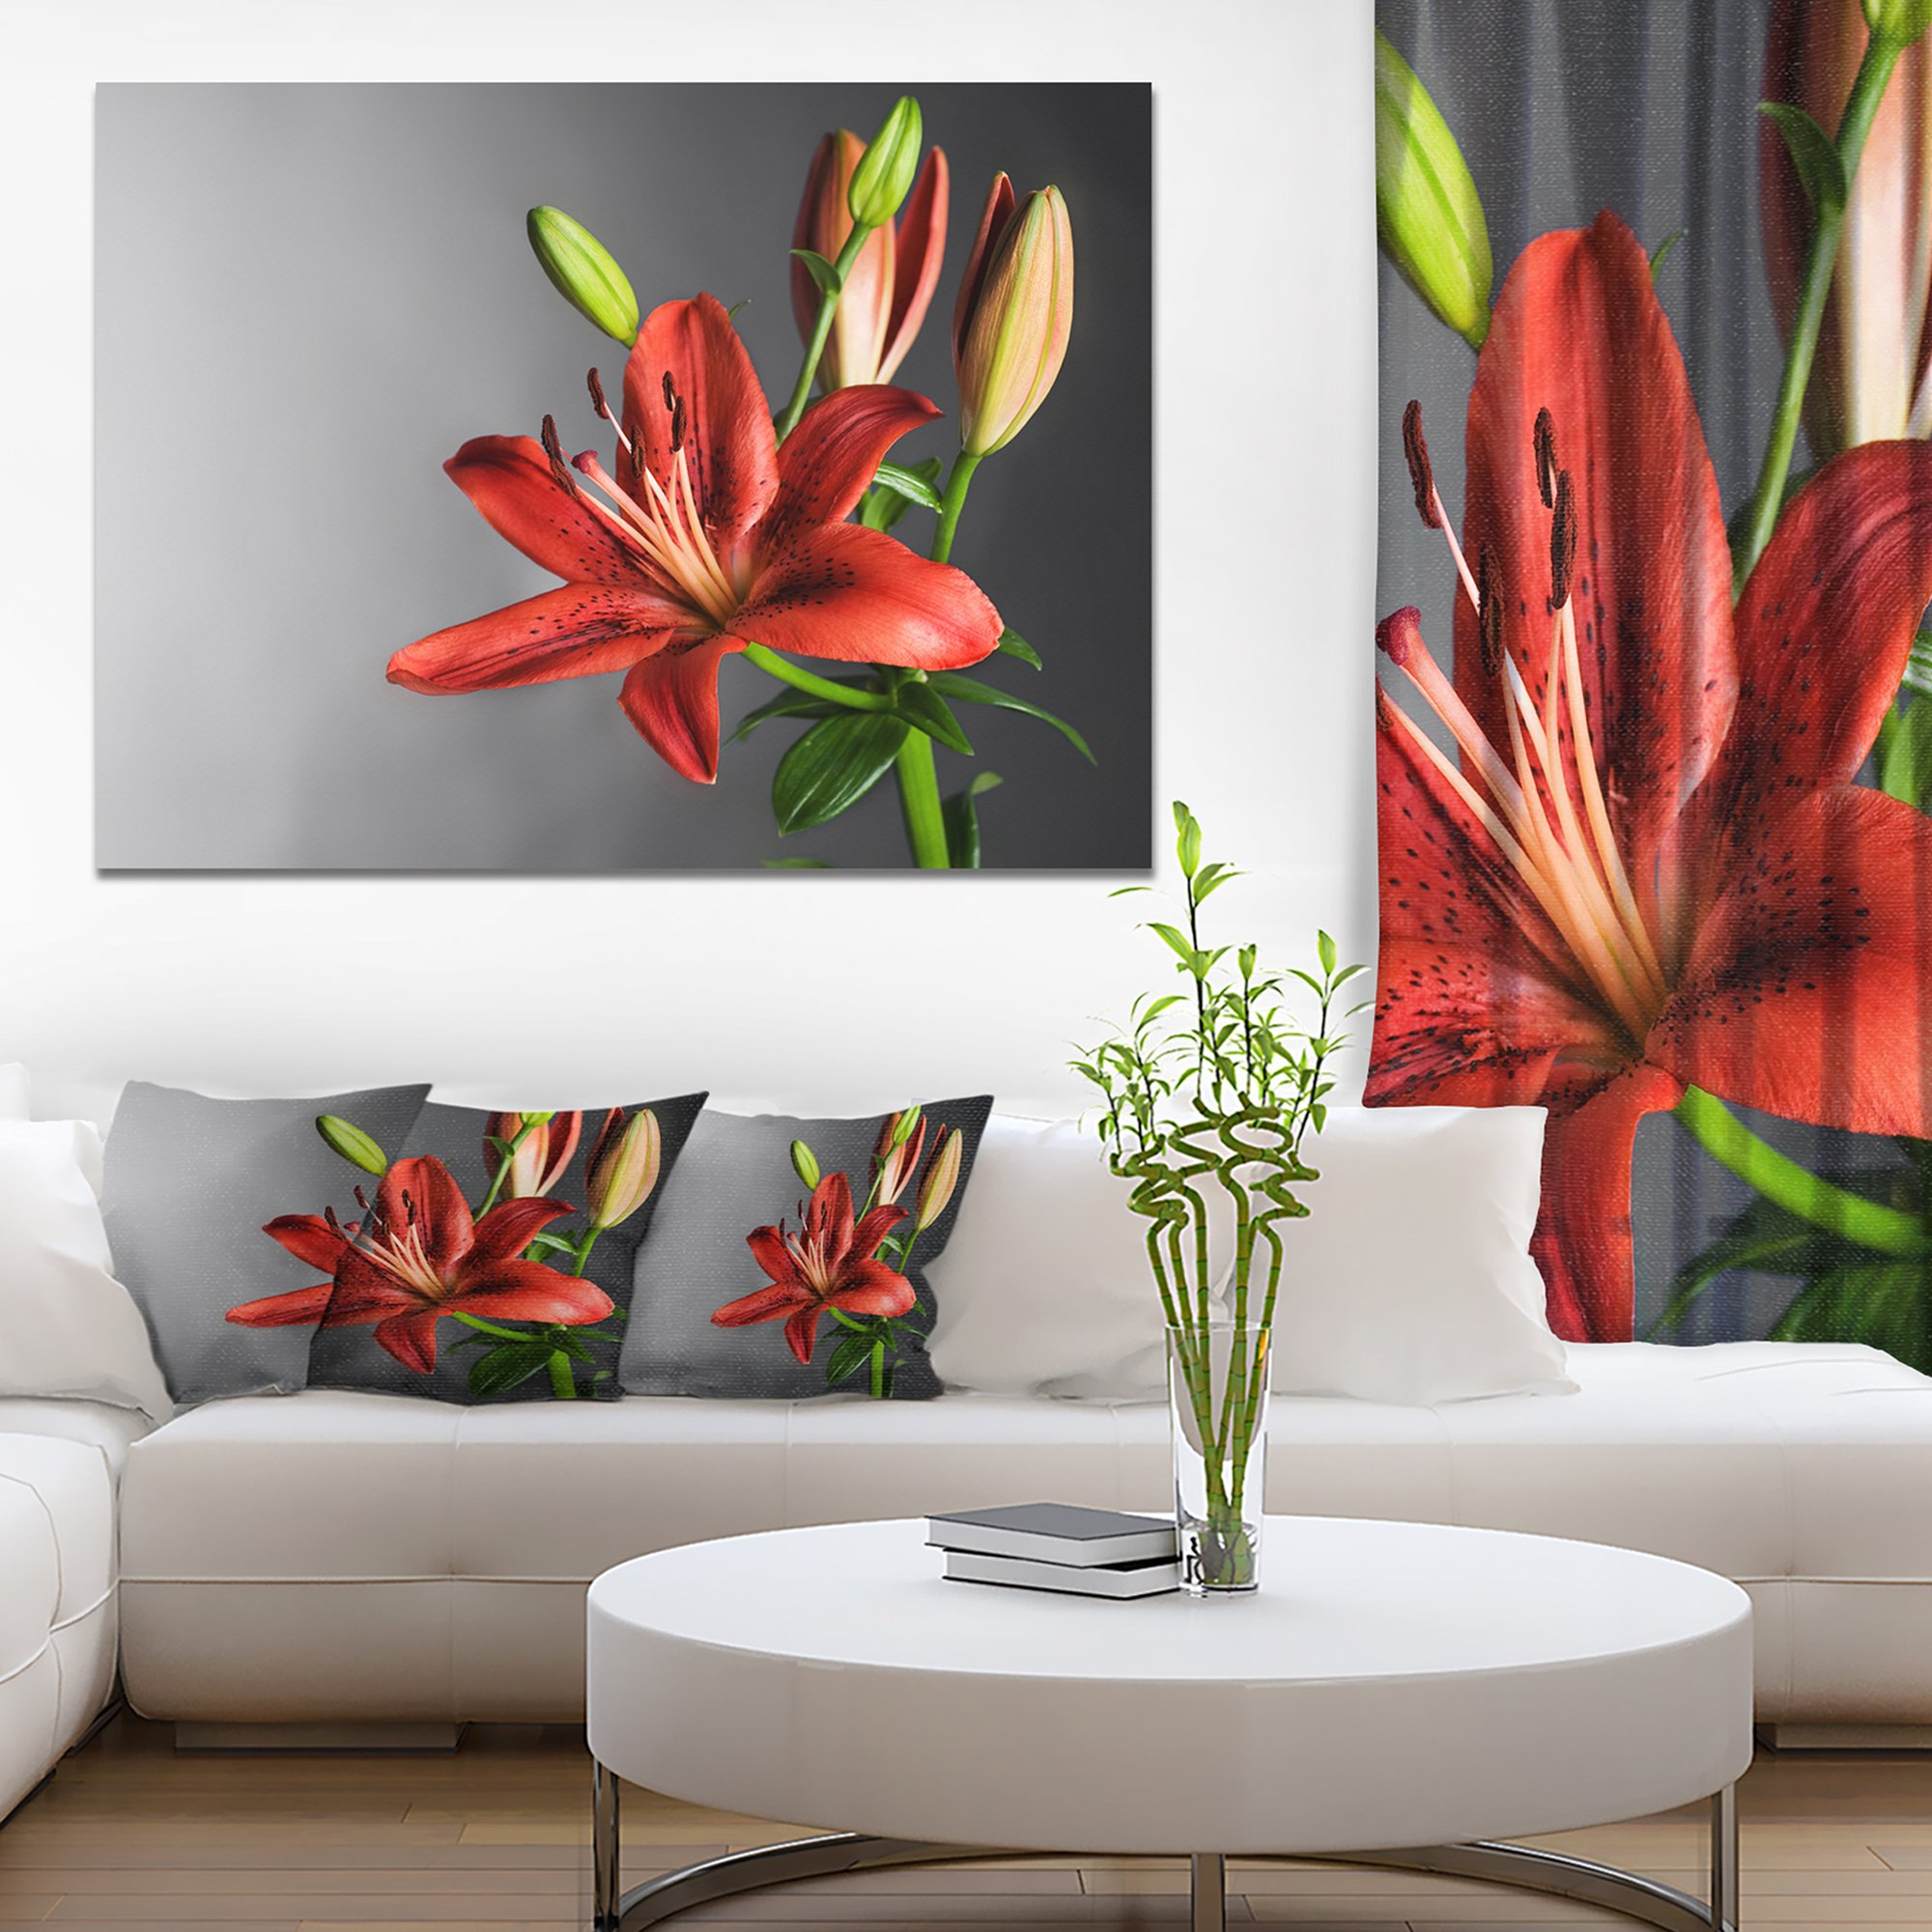 Cute Red Lily Flower over Black Flowers Canvas Wall Artwork by Design Art